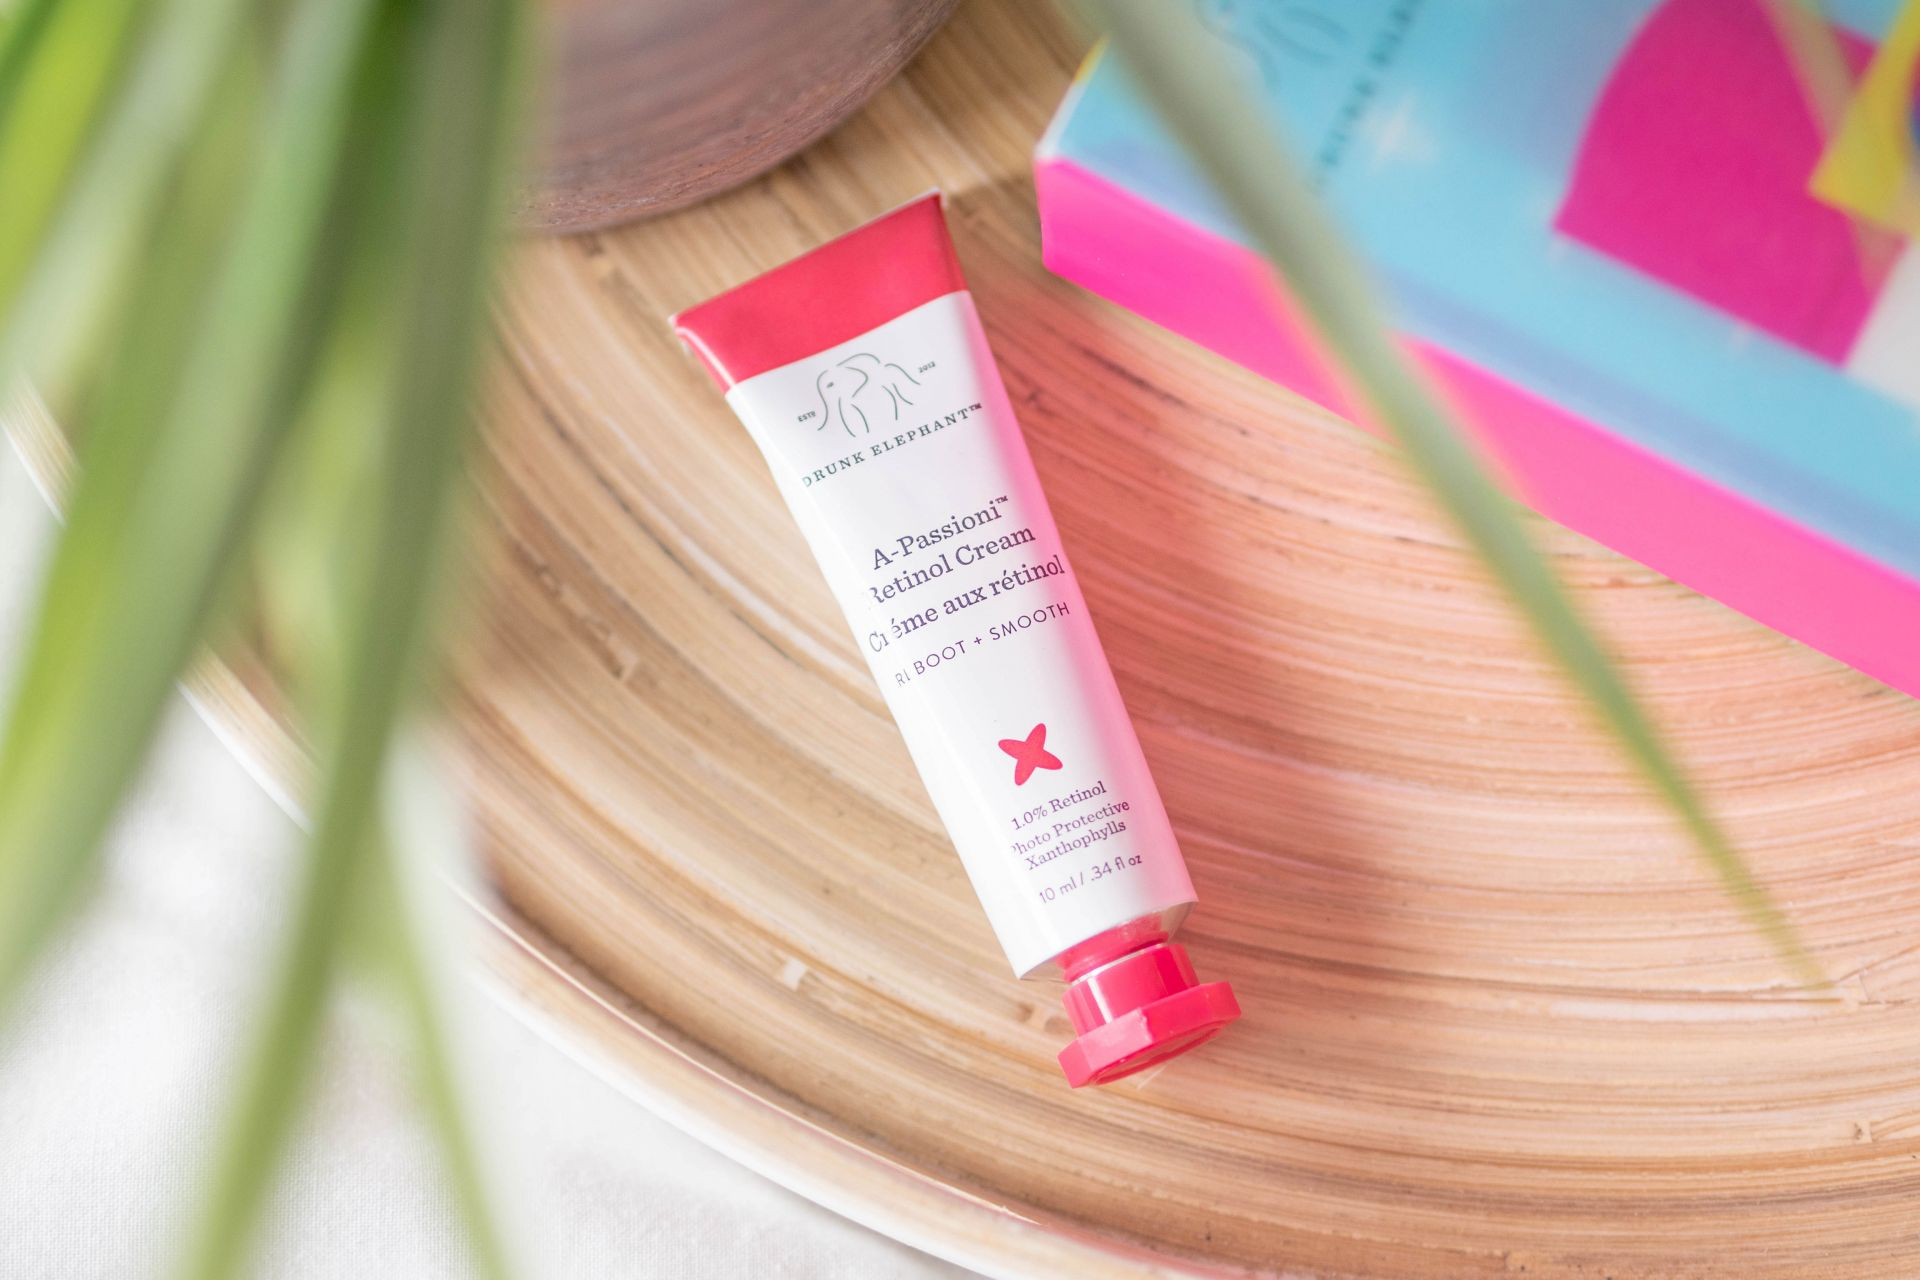 Drunk Elephant A-Passioni Retinol Cream Review